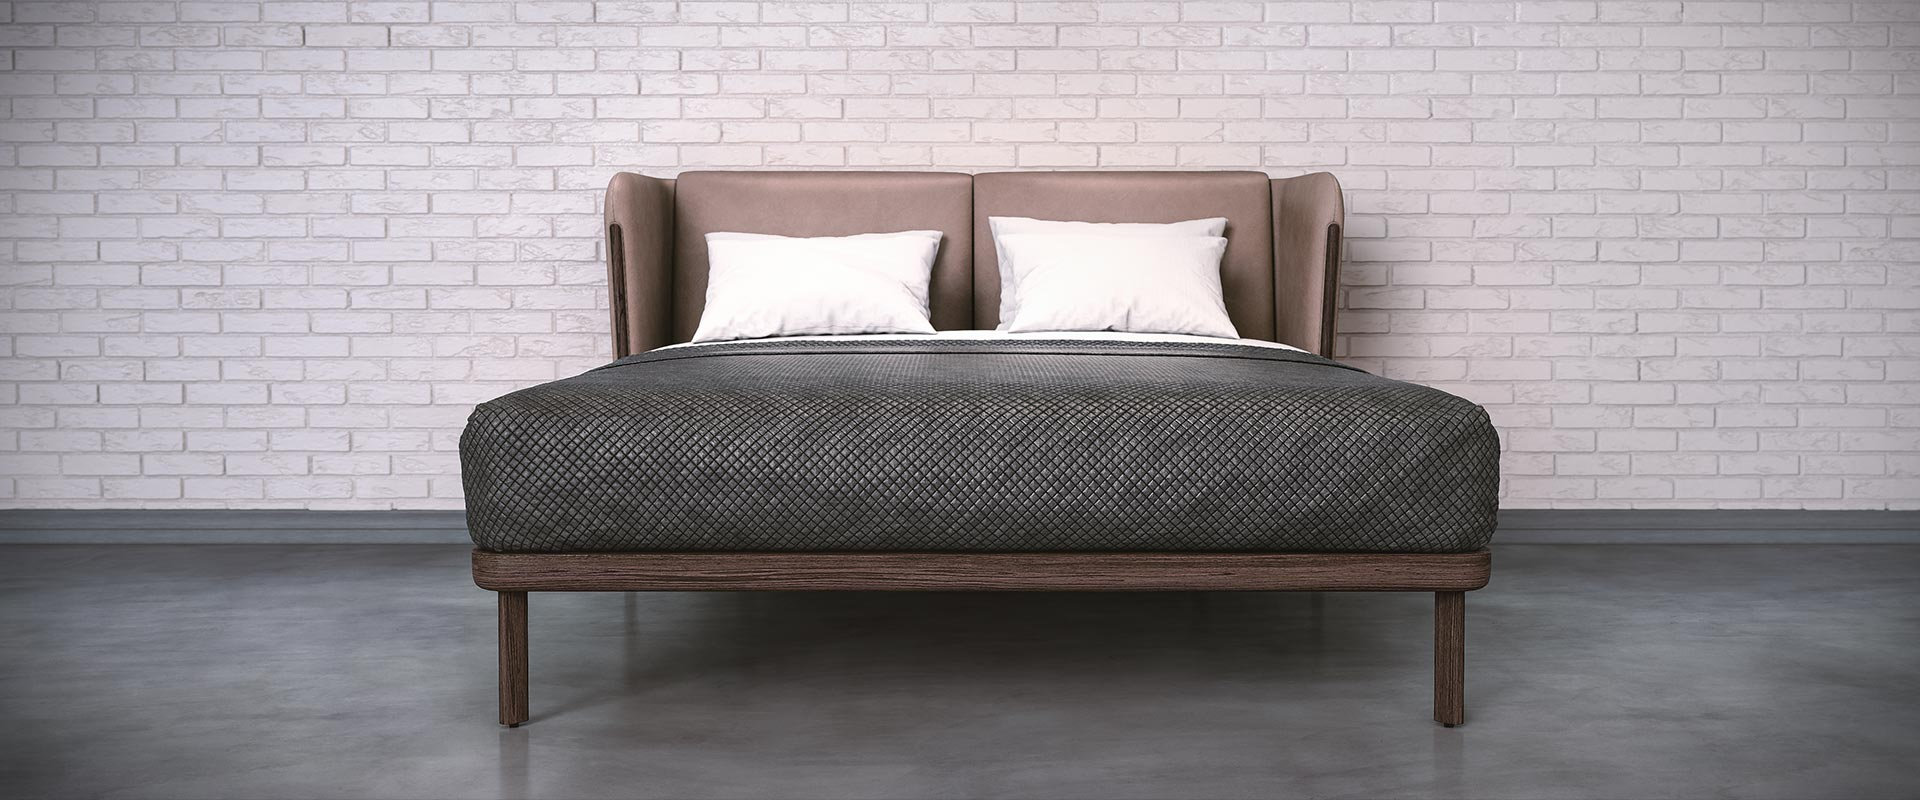 Furniture Render Bed